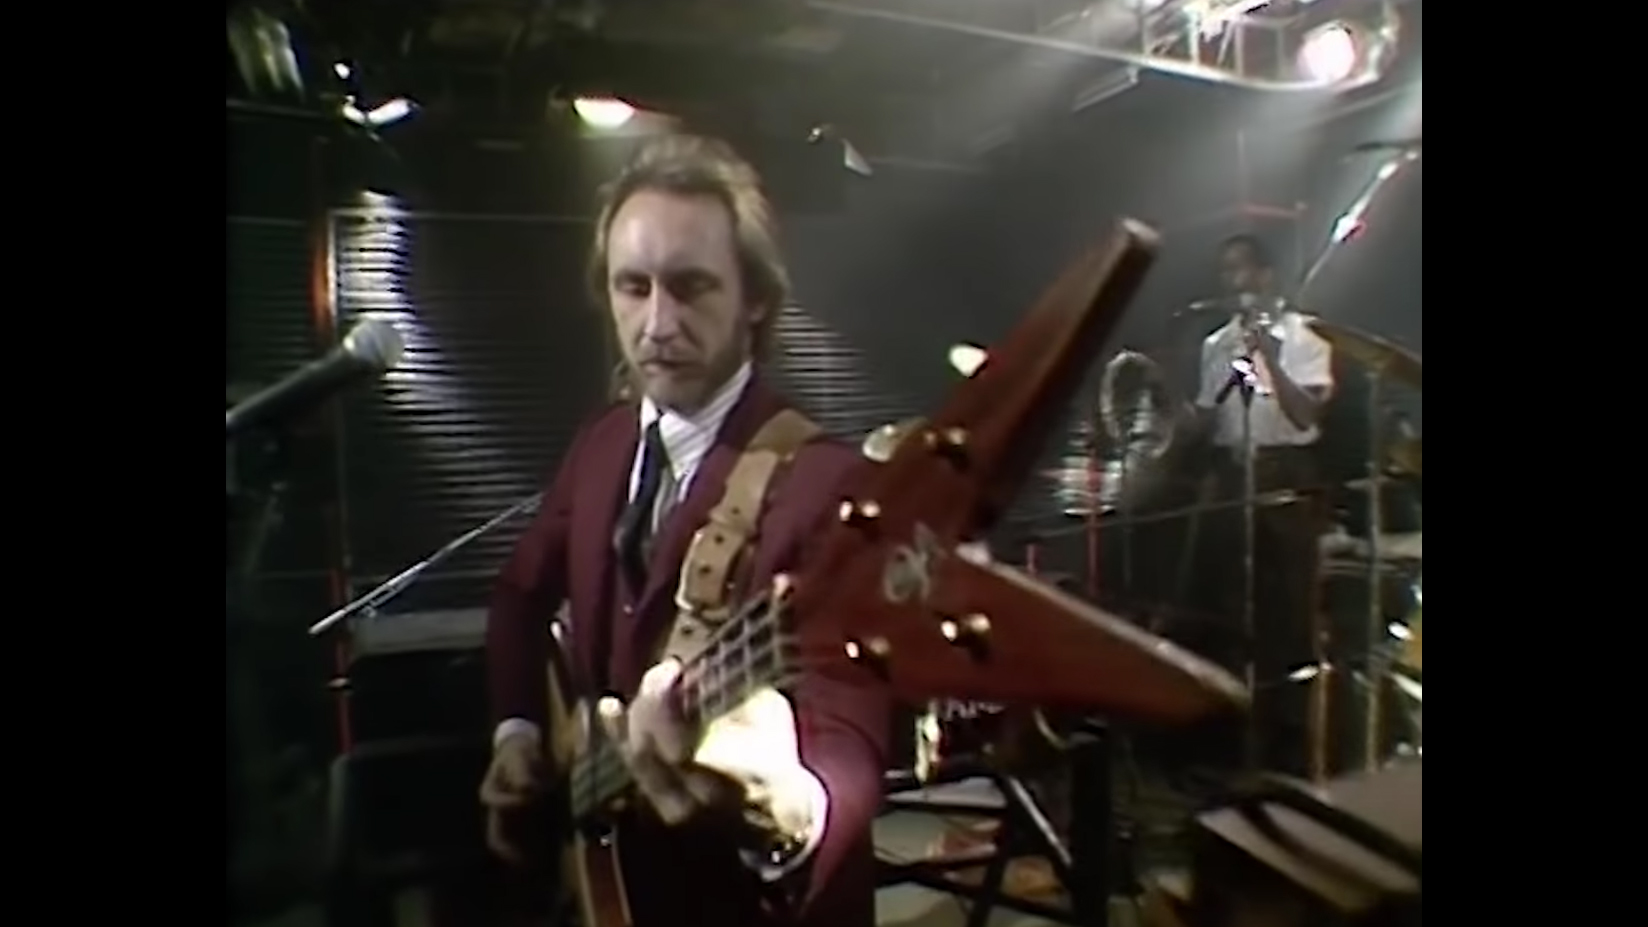 John Entwistle with Rick Wakeman And His Band: Twist and Shout